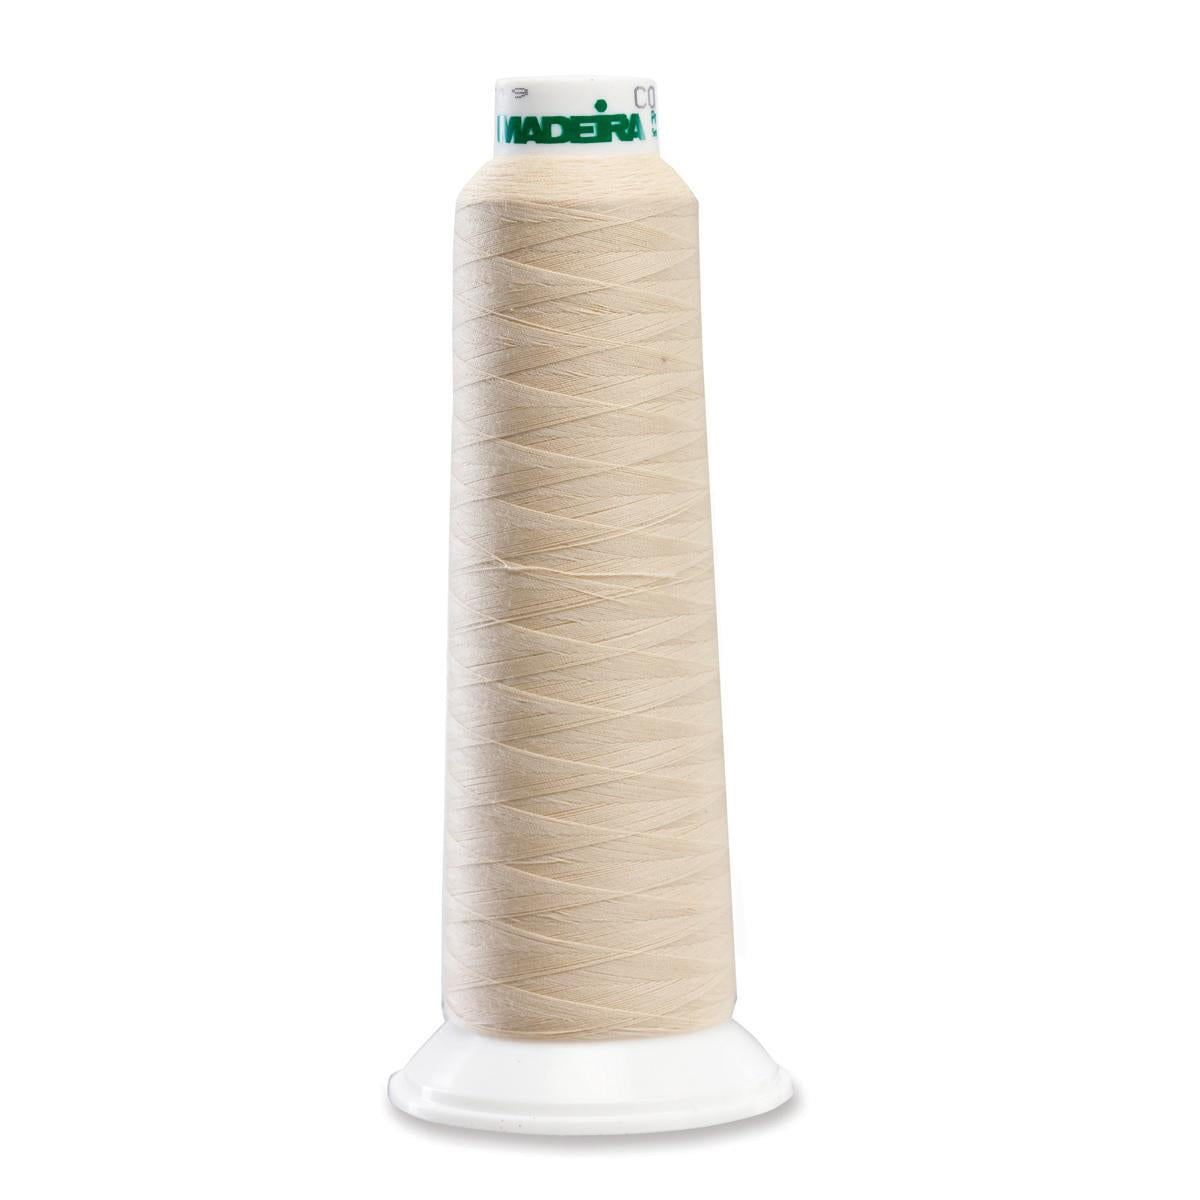 Madeira Serger Thread - Pearl